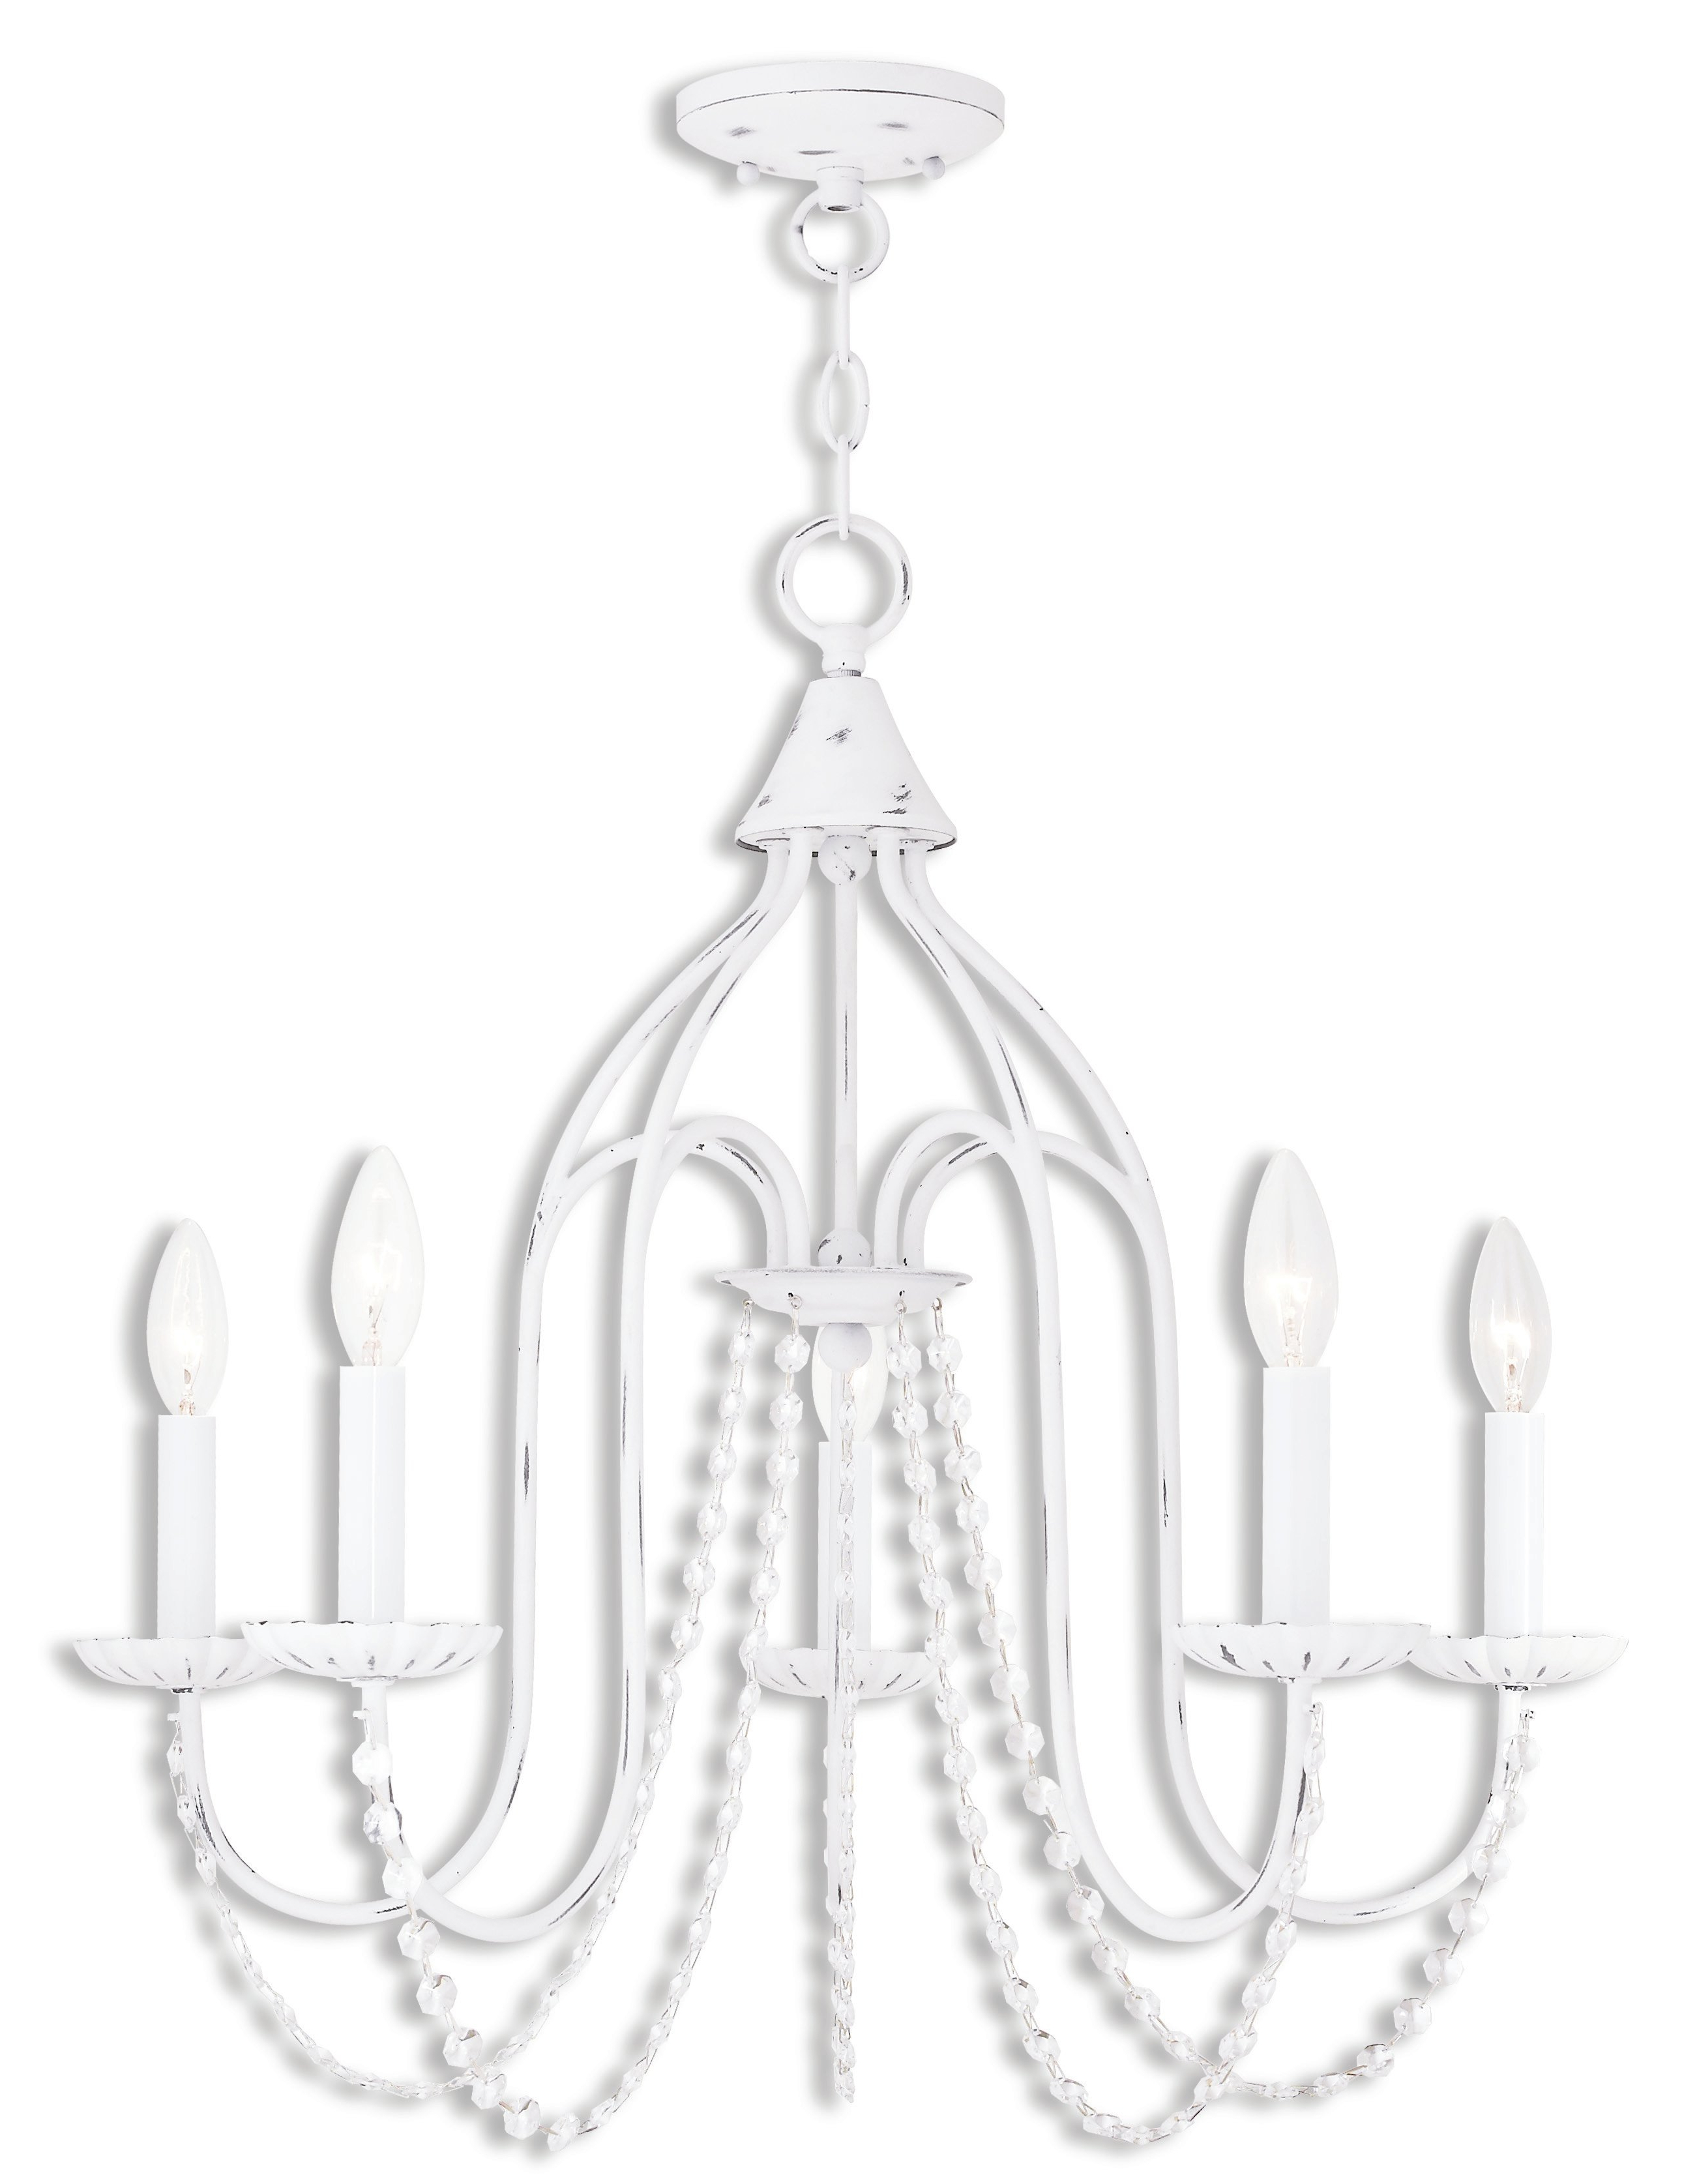 Preferred Florentina 5 Light Candle Style Chandeliers Intended For Florentina 5 Light Candle Style Chandelier (View 16 of 20)